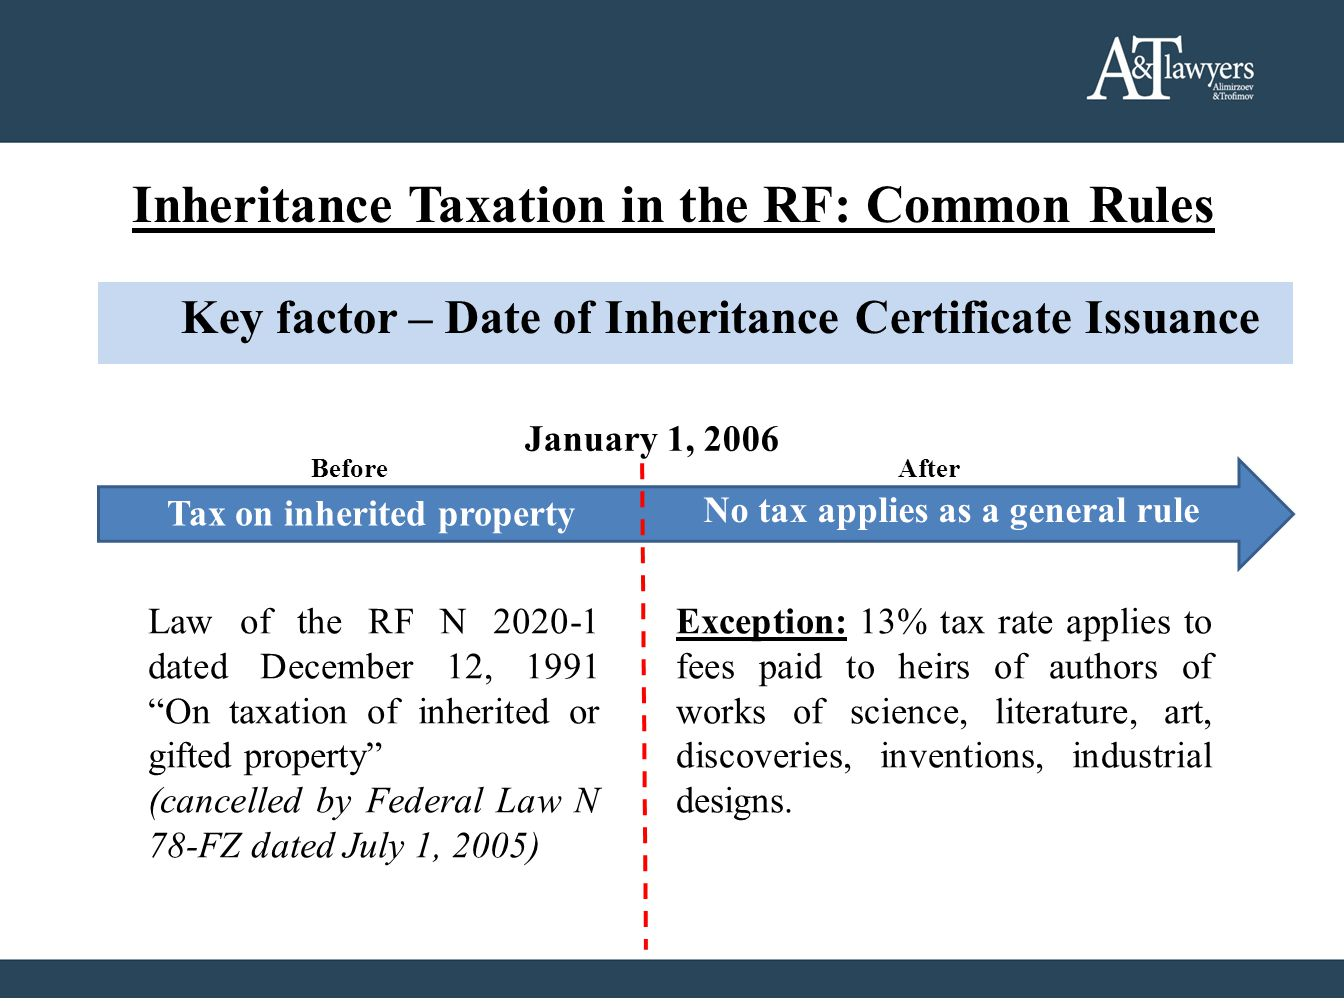 Inheritance Taxation in the RF: Common Rules January 1, 2006 Law of the RF N 2020-1 dated December 12, 1991 On taxation of inherited or gifted property (cancelled by Federal Law N 78-FZ dated July 1, 2005) Exception: 13% tax rate applies to fees paid to heirs of authors of works of science, literature, art, discoveries, inventions, industrial designs.